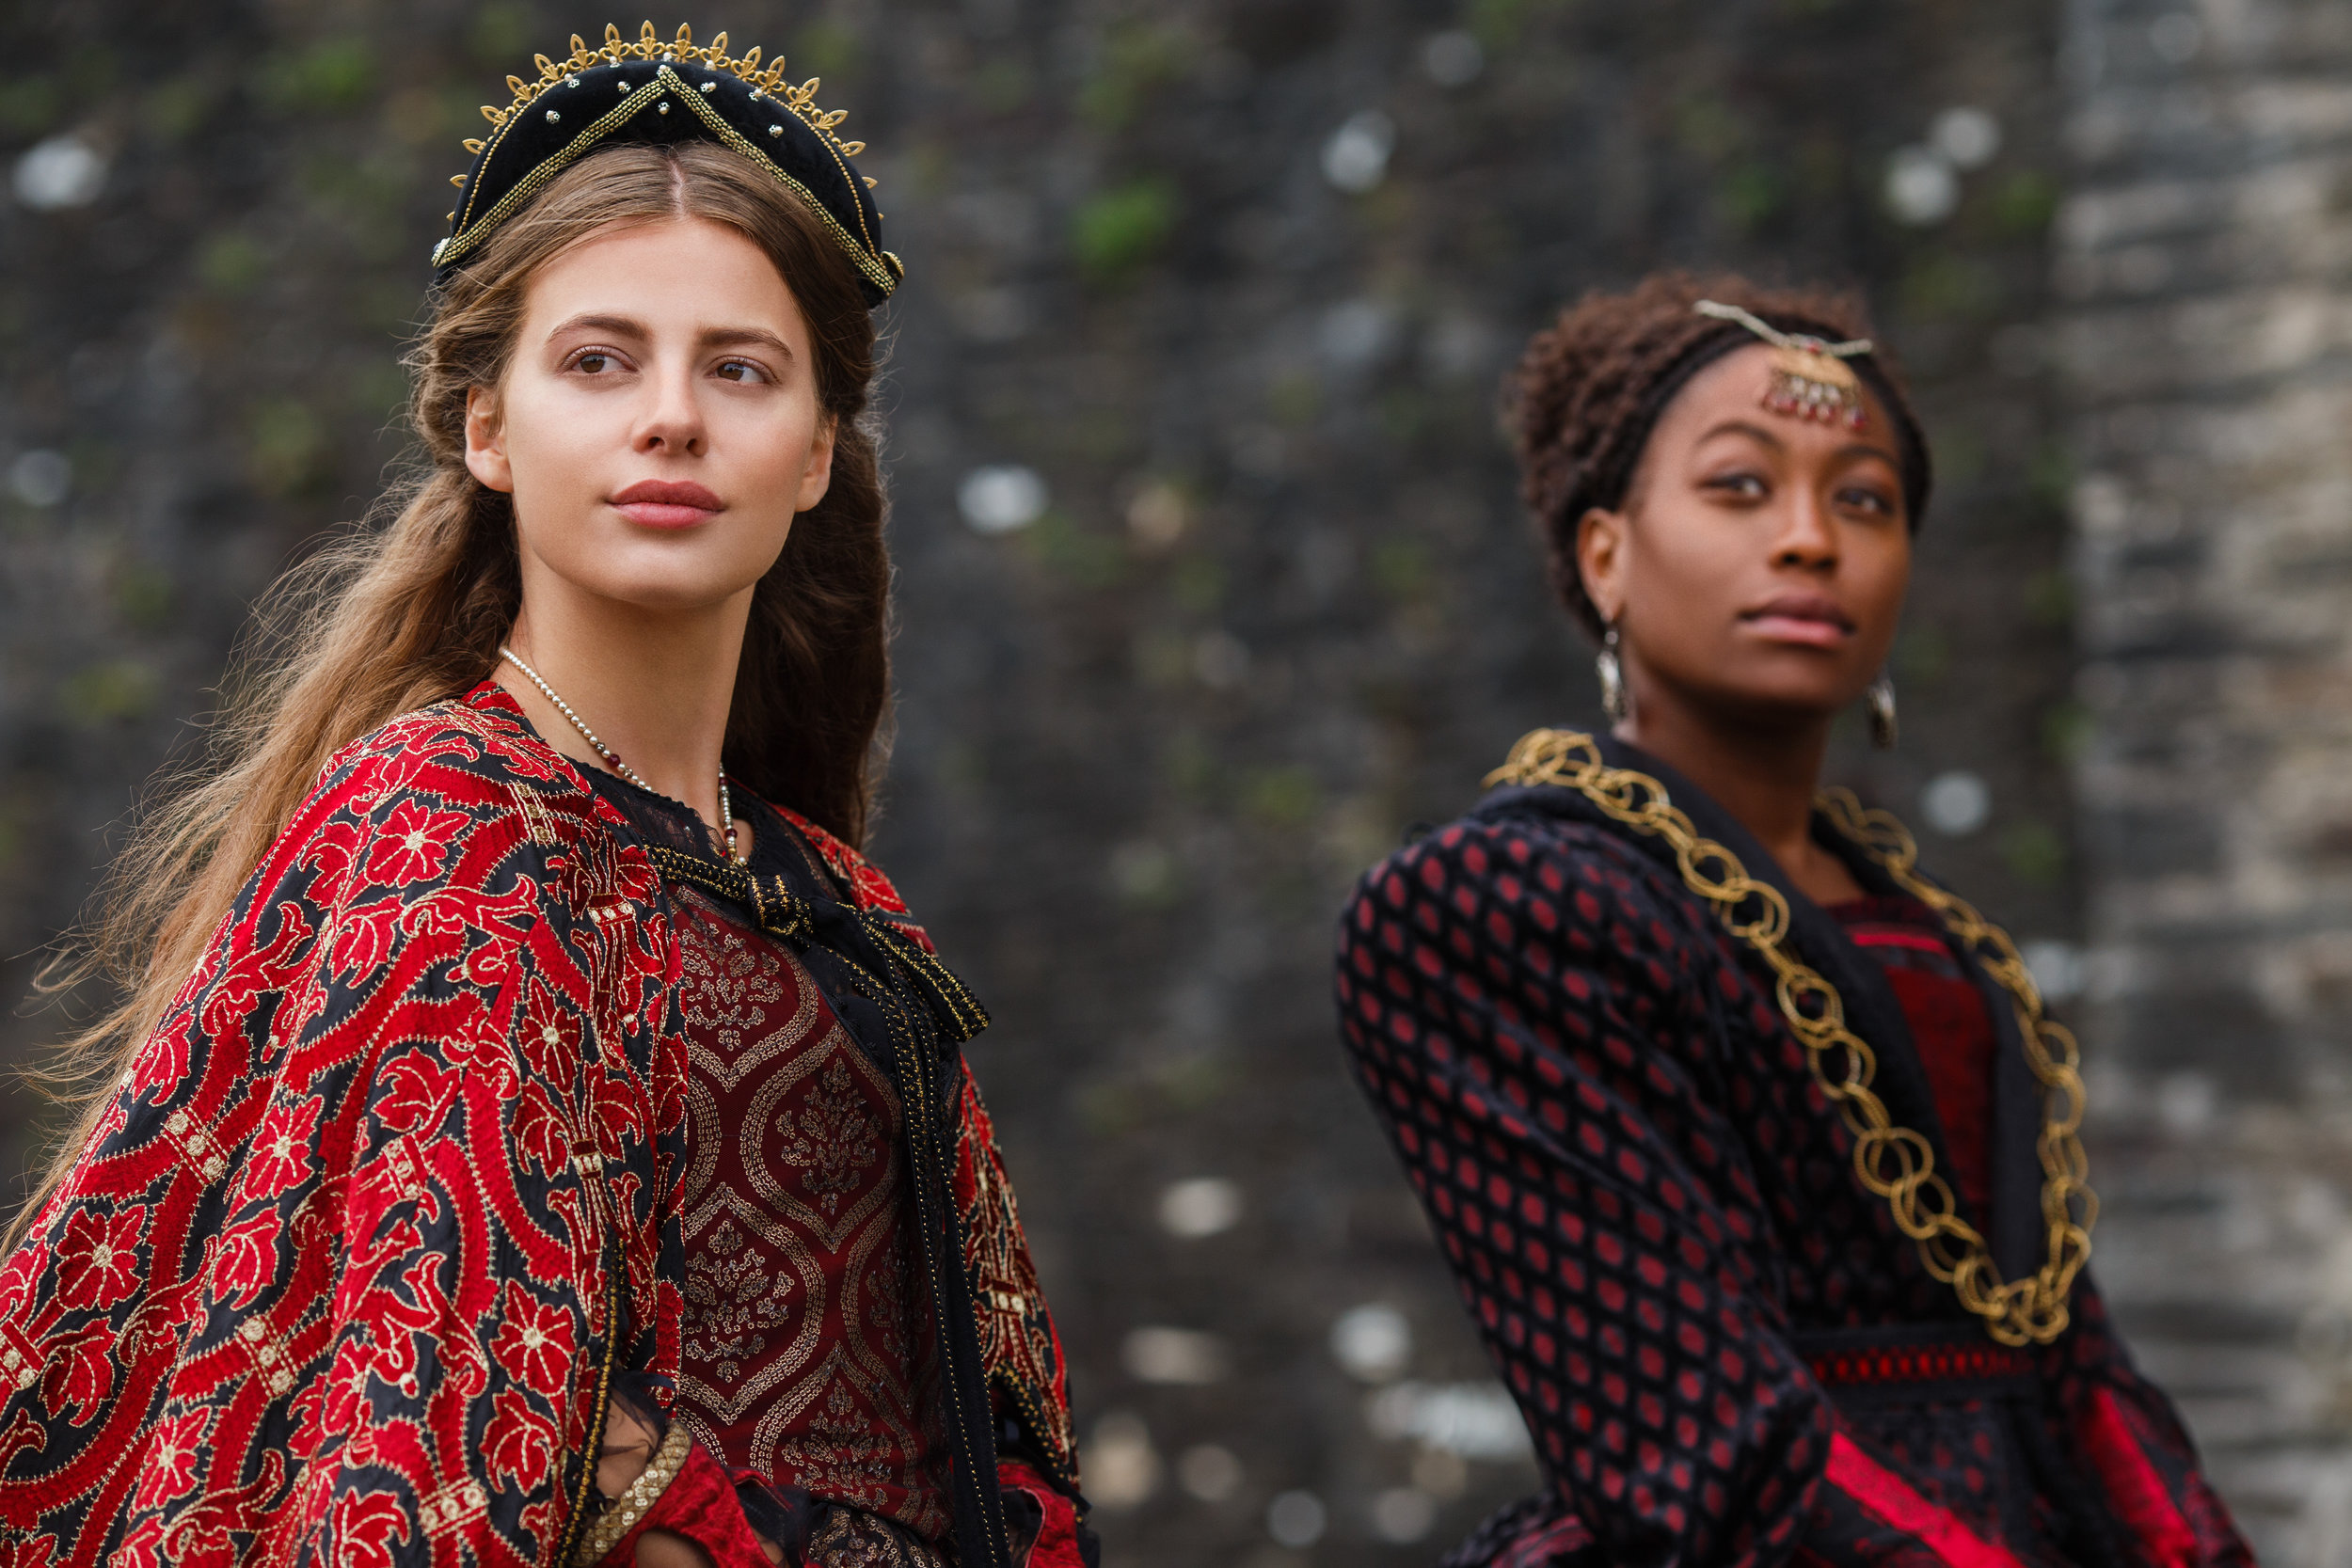 Nadia Parkes (Rosa), Stephanie Levi-John (Lina) - The Spanish Princess 101.jpg